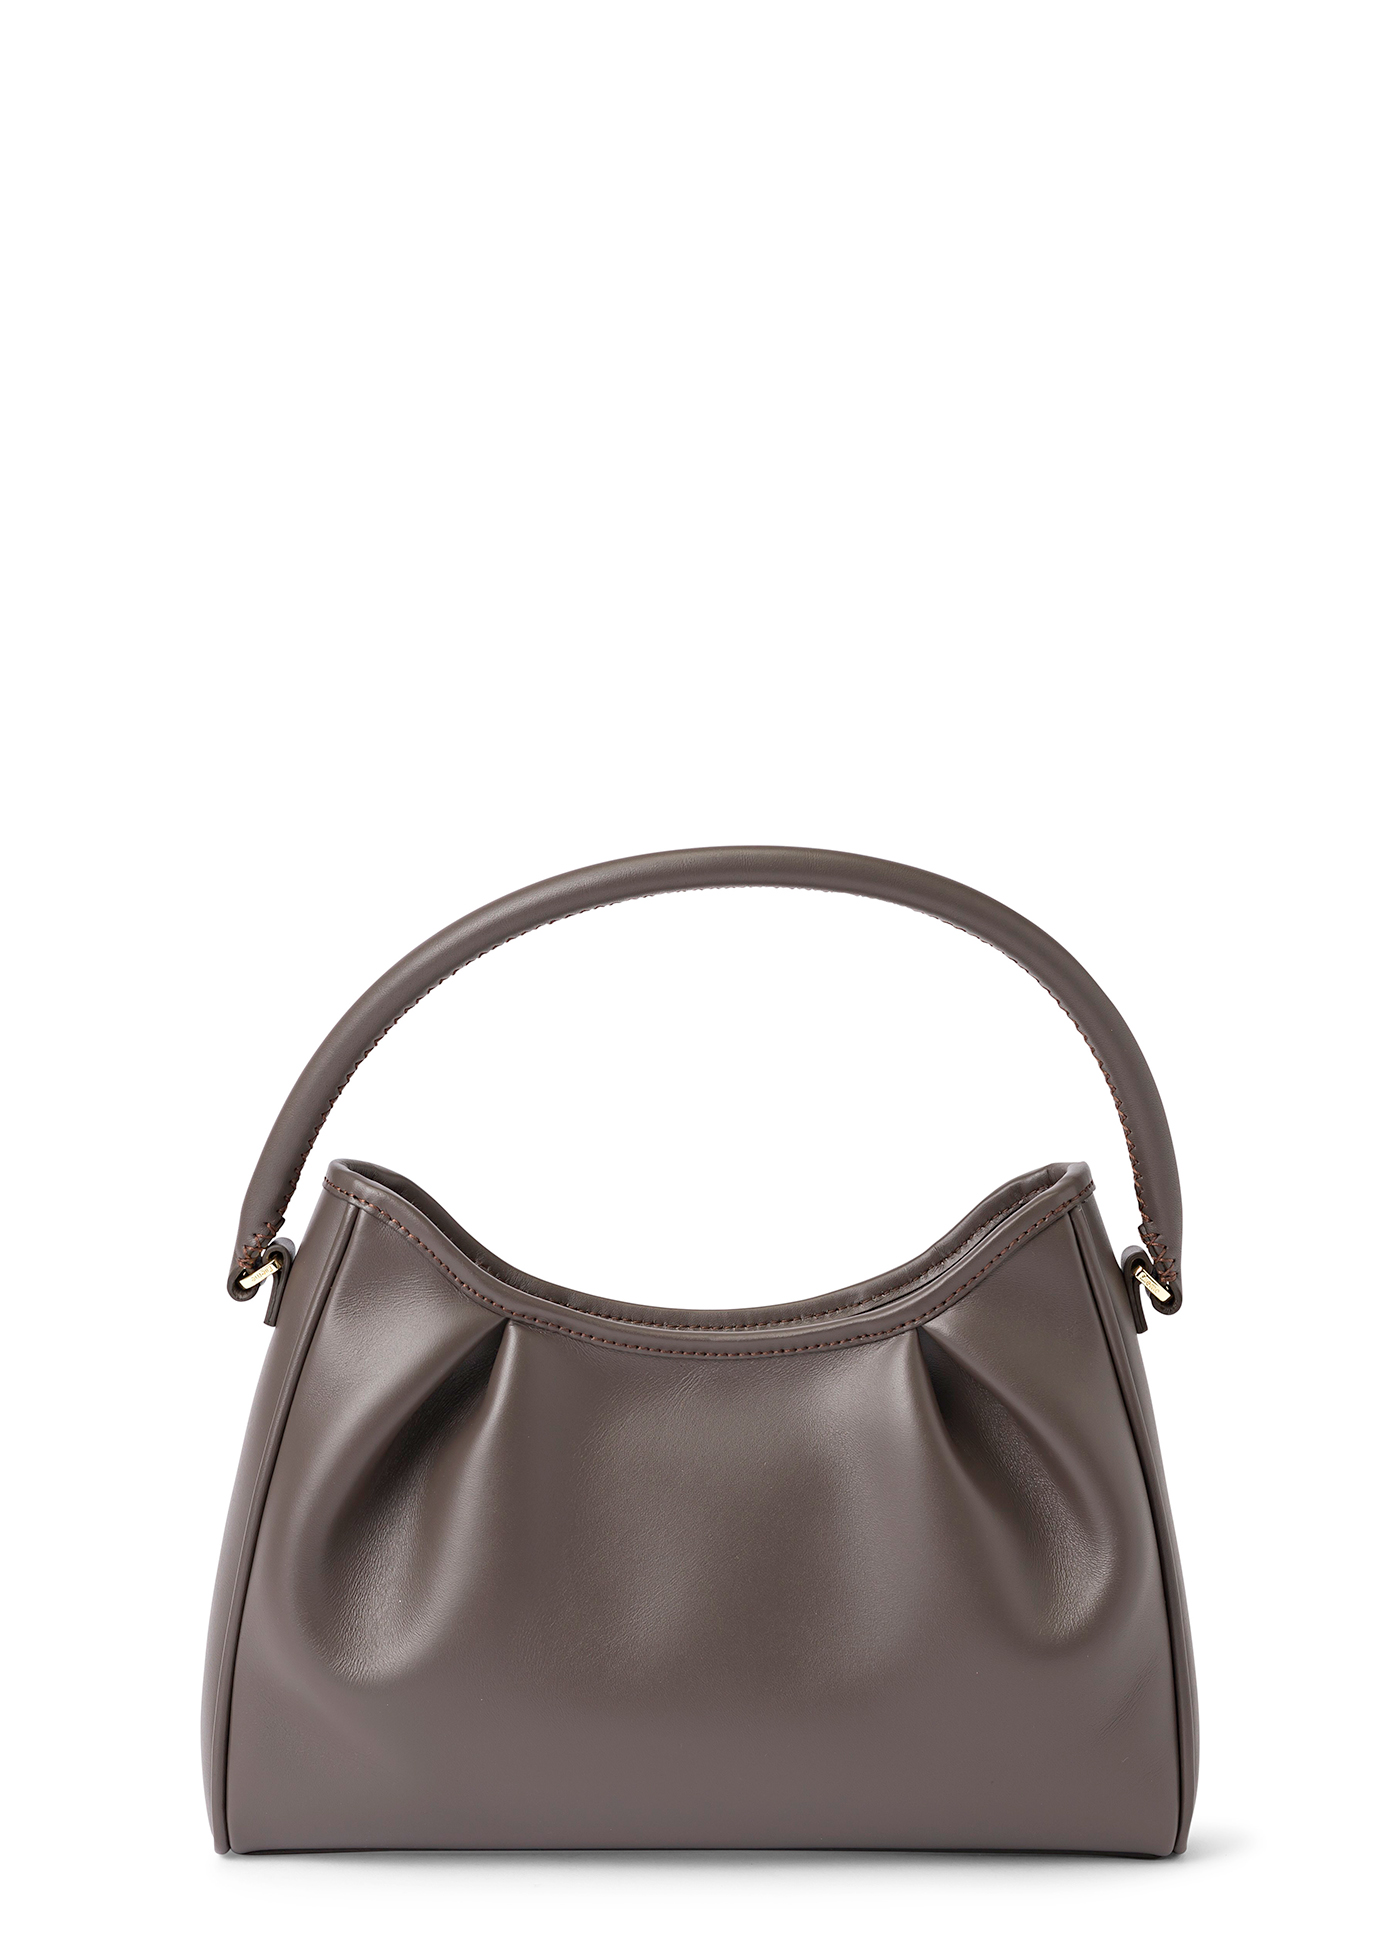 Large Dimple Leather image number 0